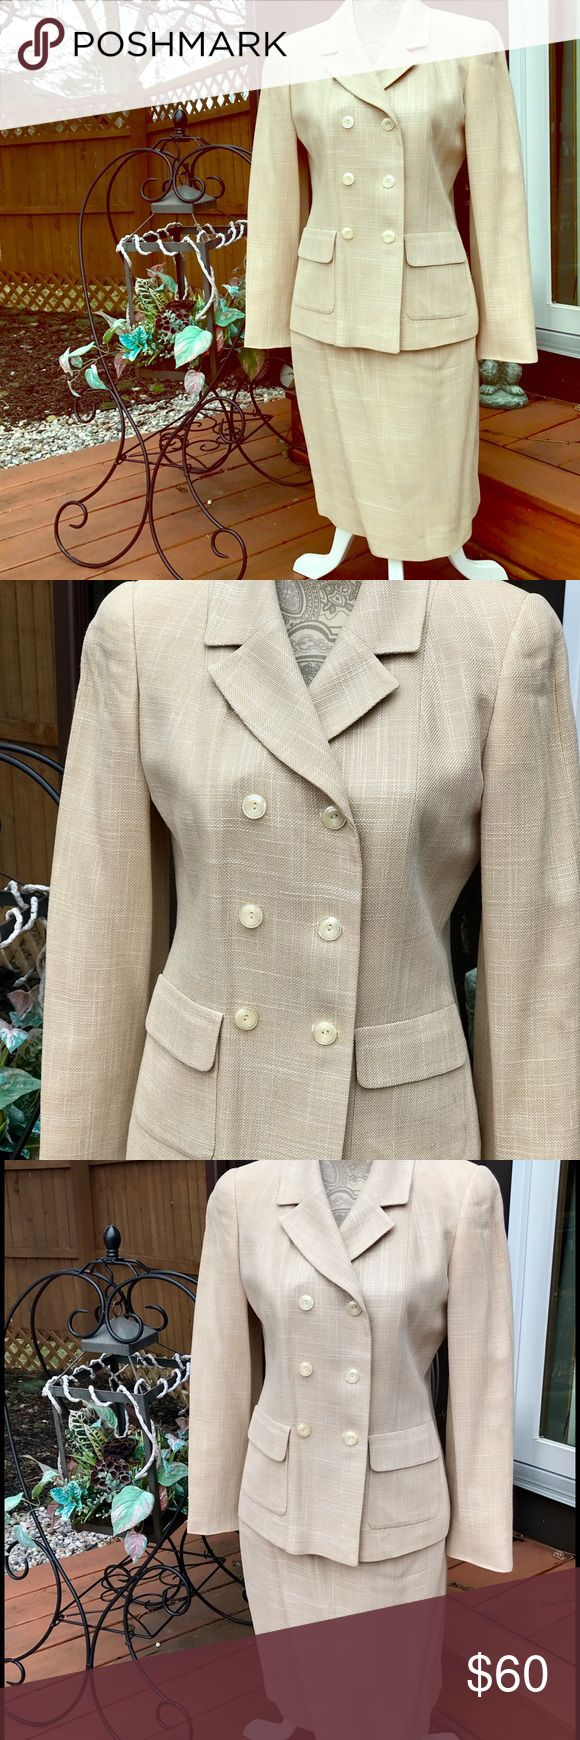 VTG LOUIS FERAUD SKIRT SUIT BEIGE SIZE 6 VINTAGE LOUIS FERAUD LIGHT BEIGE WITH SMALL LINES OF WHITE ON JACKET/BLAZER WITH MATCHING LINED SKIRT SIZE 6.  EXCELLENT CONDITION, THE WHITE TAG ON INSIDE IS WORN AND HAS A TEAR (SHOWN IN PICTURE) I LOOKED OVER THE BEST I COULD FOR STAINS AND DID NOT SEE ANY. LOUIS FERAUD Other